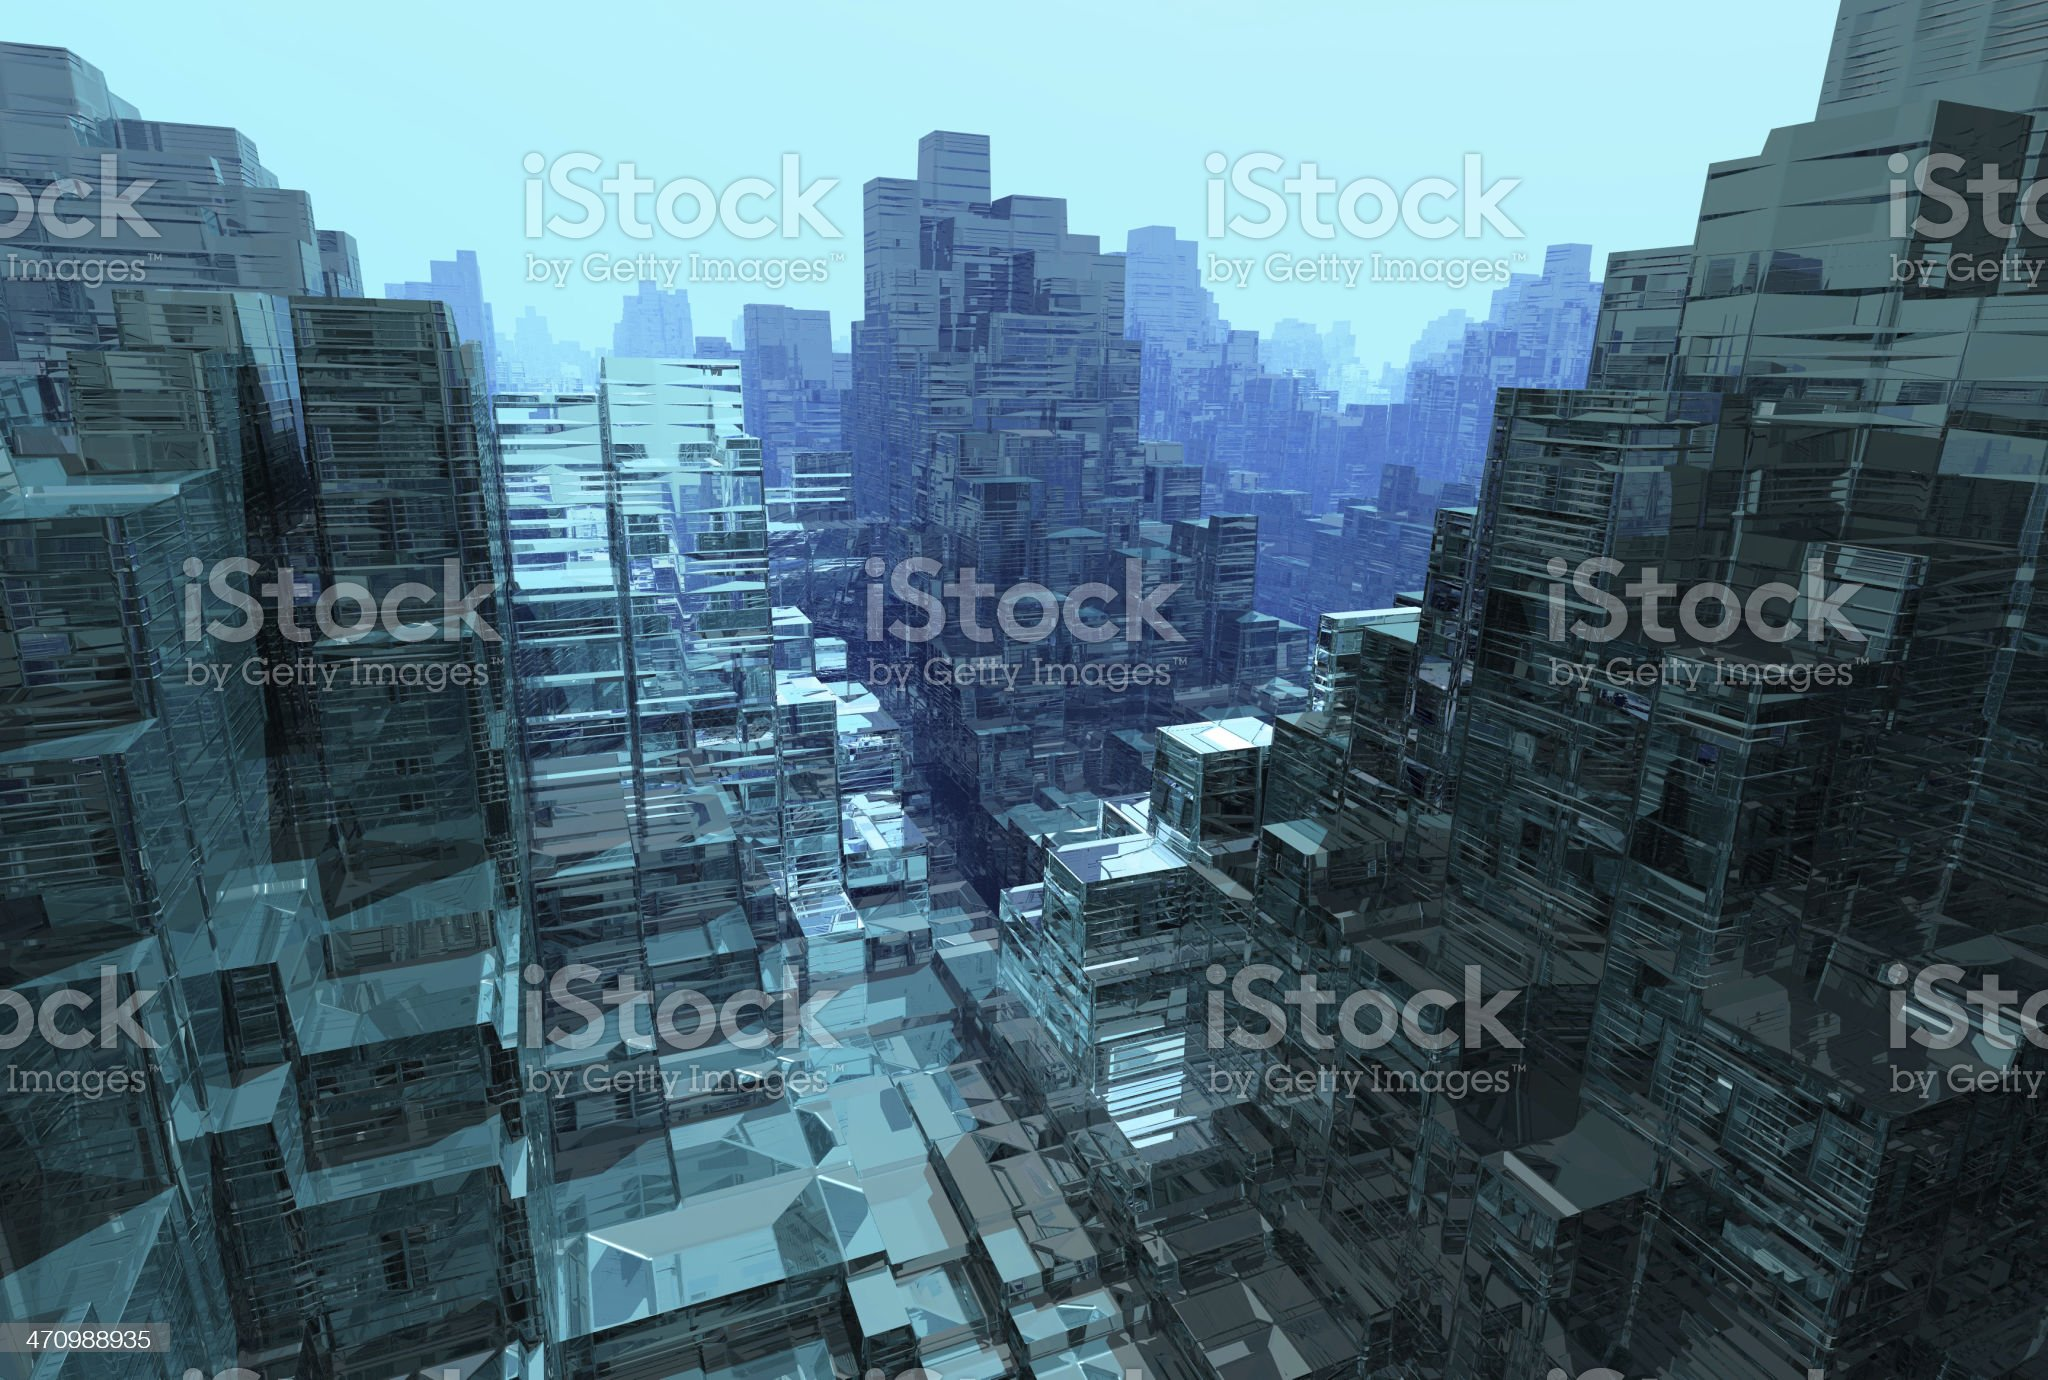 Anarchitectural 209 royalty-free stock photo